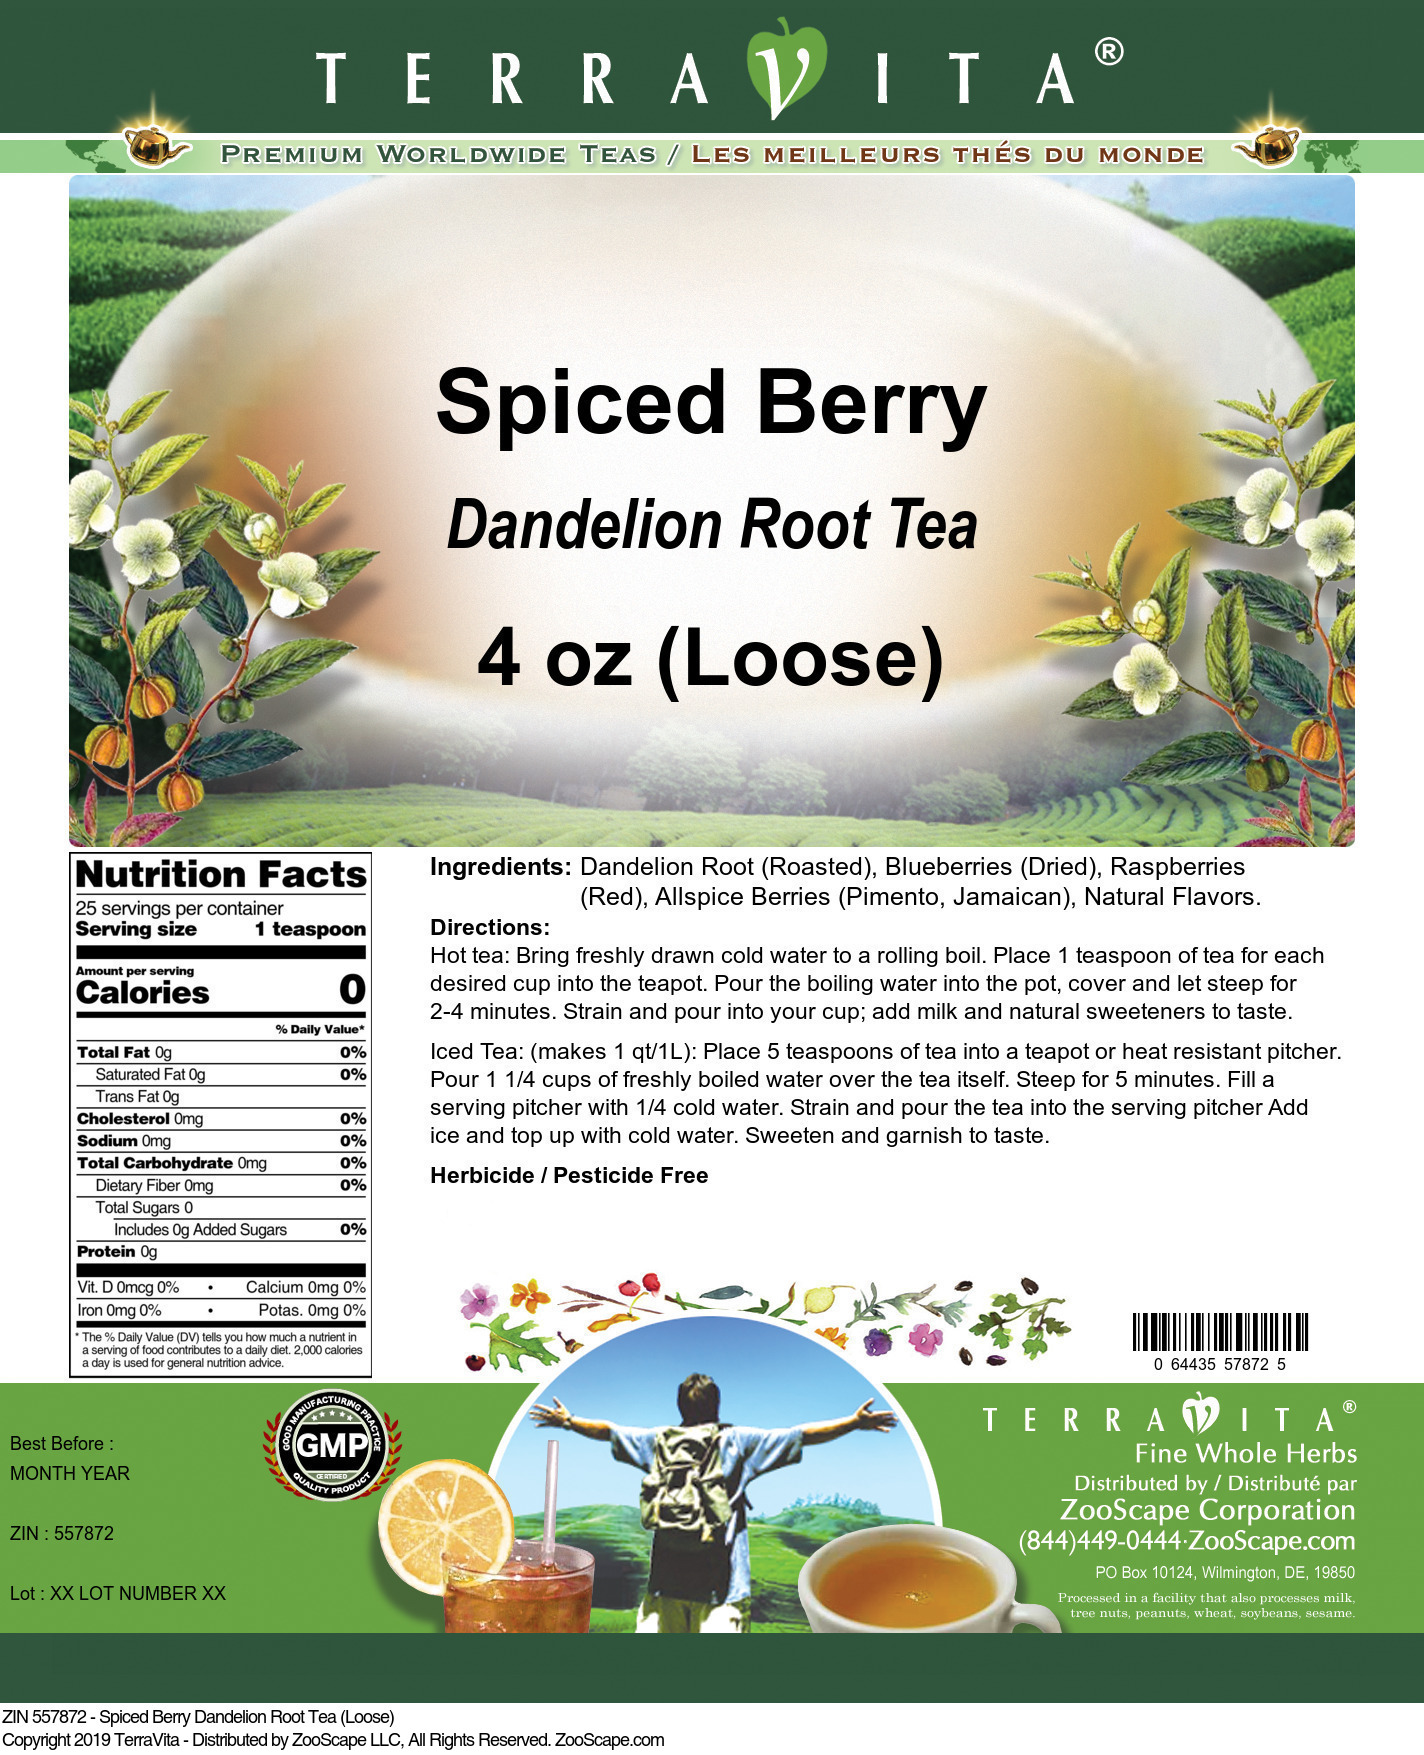 Spiced Berry Dandelion Root